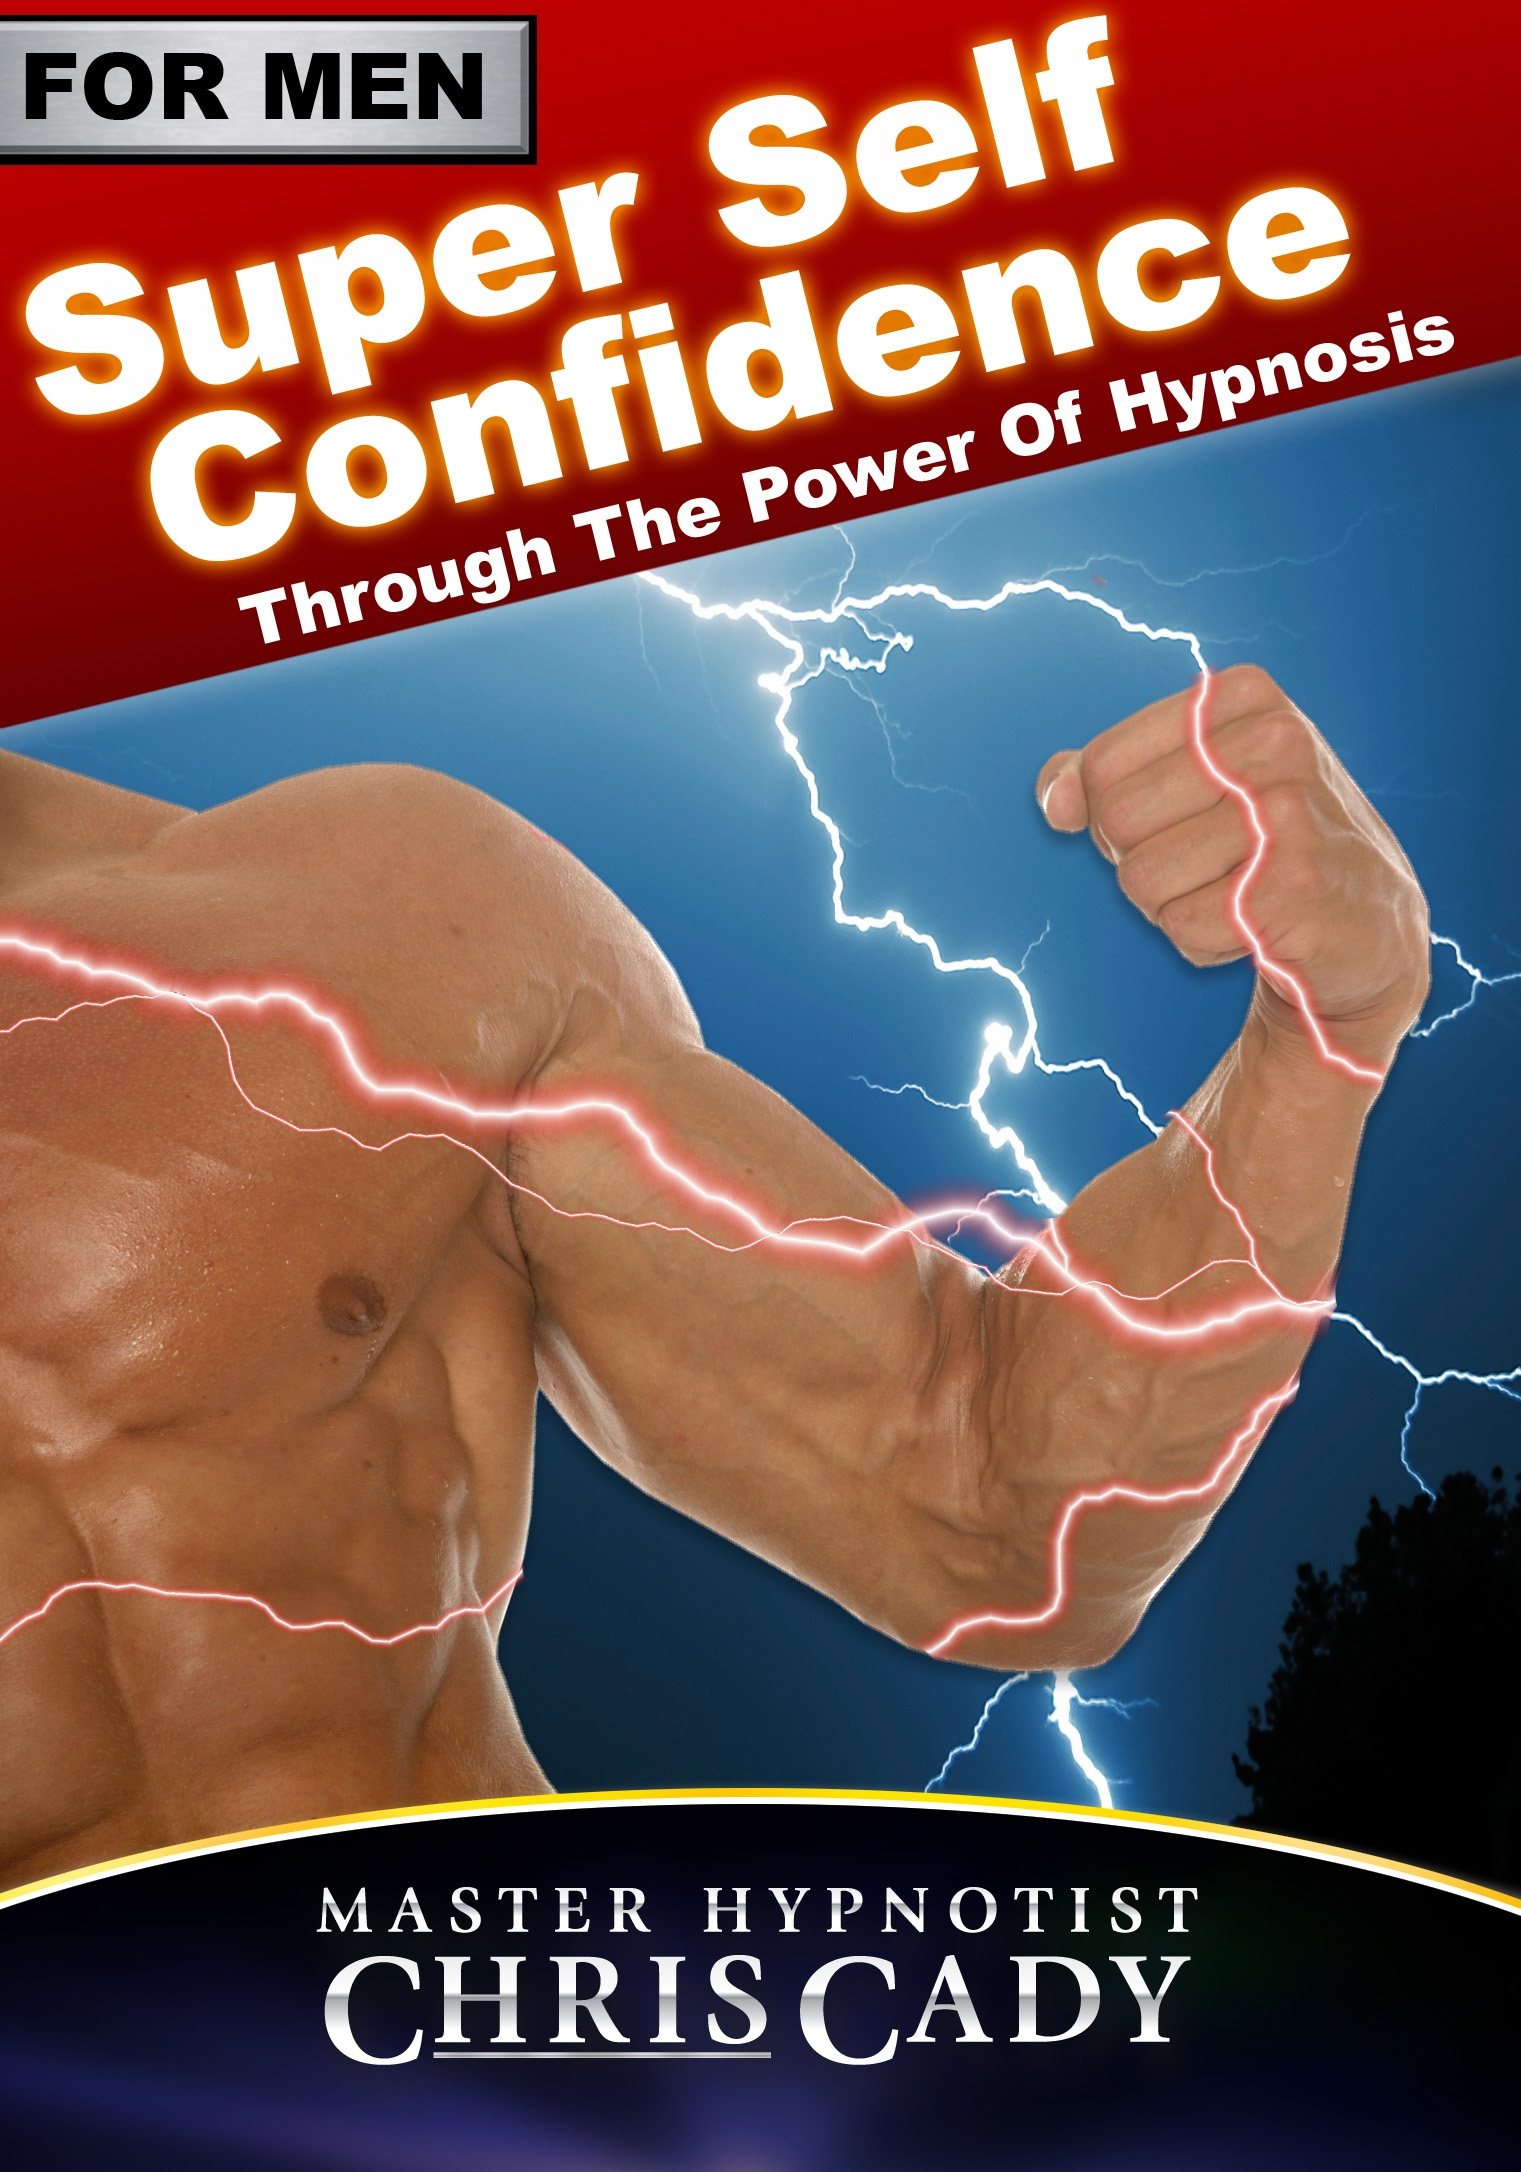 self confidence for men with hypnosis cd mp3 download